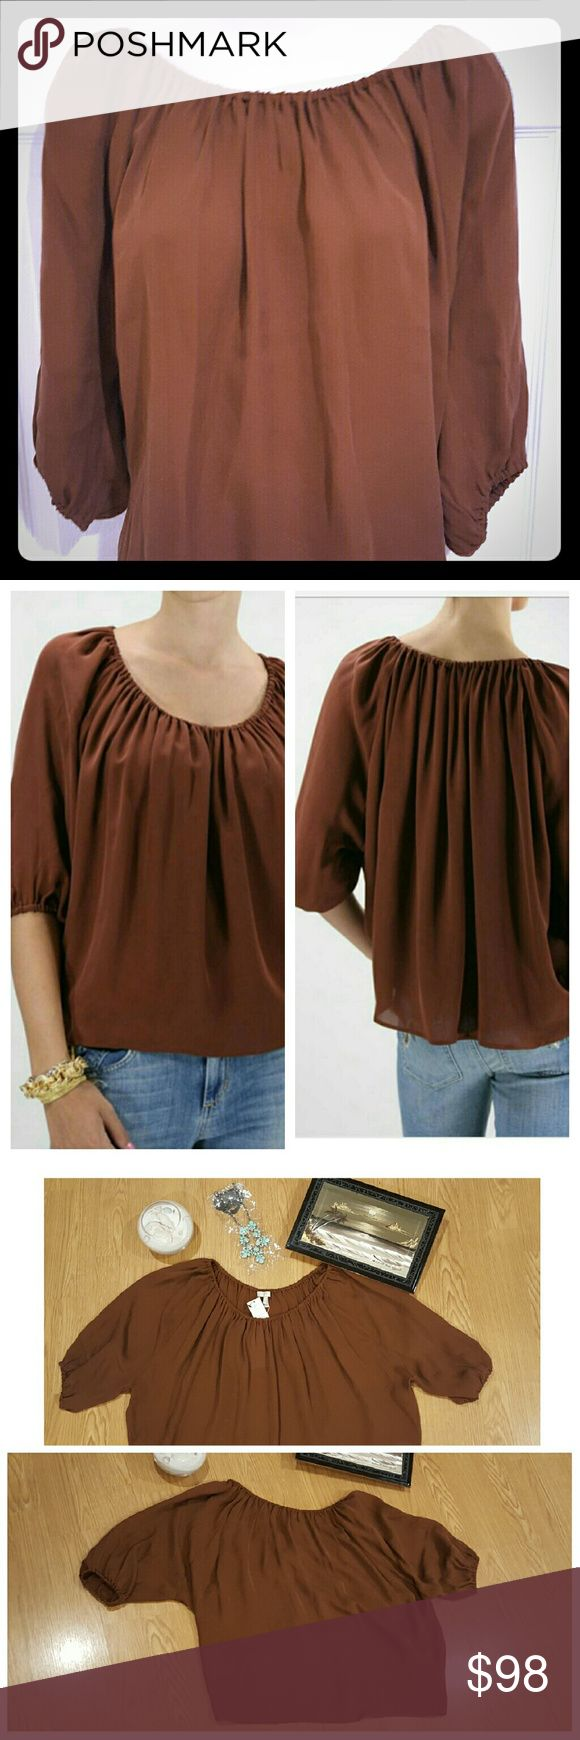 """NWT Newberry Silk Blouse Top New with tags. Joie """"Newberry"""" Silk Blouse with scoop neck. Can also be worn off shoulder for different look. High low waist line. Style # N11-22410. 100% Silk.   Color: Apache Brown  Chest: 32"""" Flat Waist: 22.5"""" Front Length: 22"""" Back Length: 23.5"""" Joie Tops Blouses"""